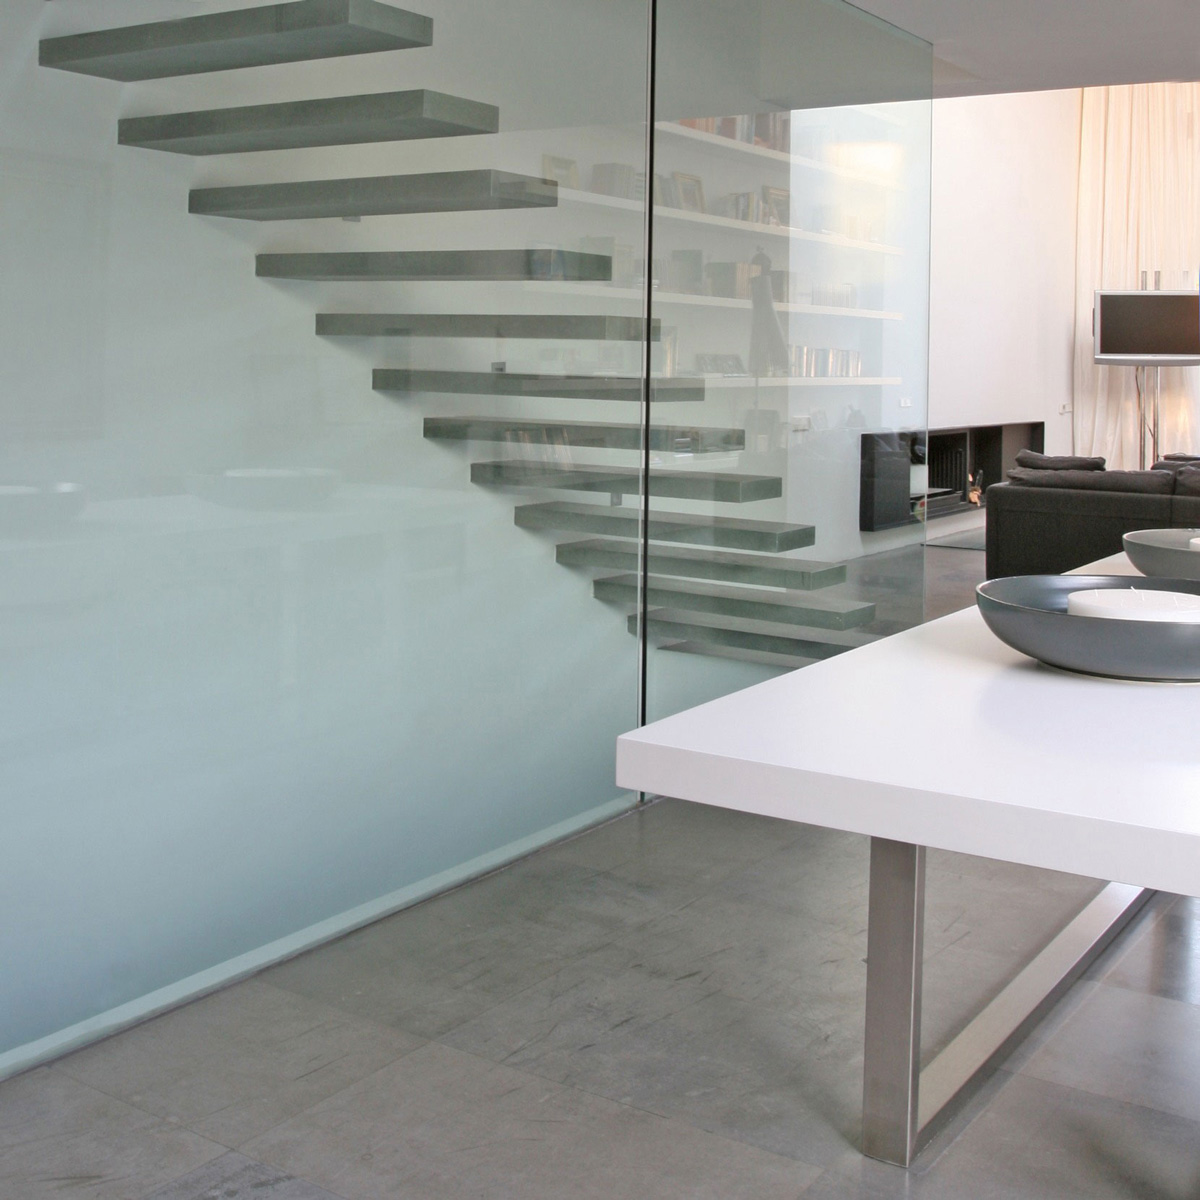 Modern Stairs, Glass Walls, Contemporary Home in Valencia, Spain